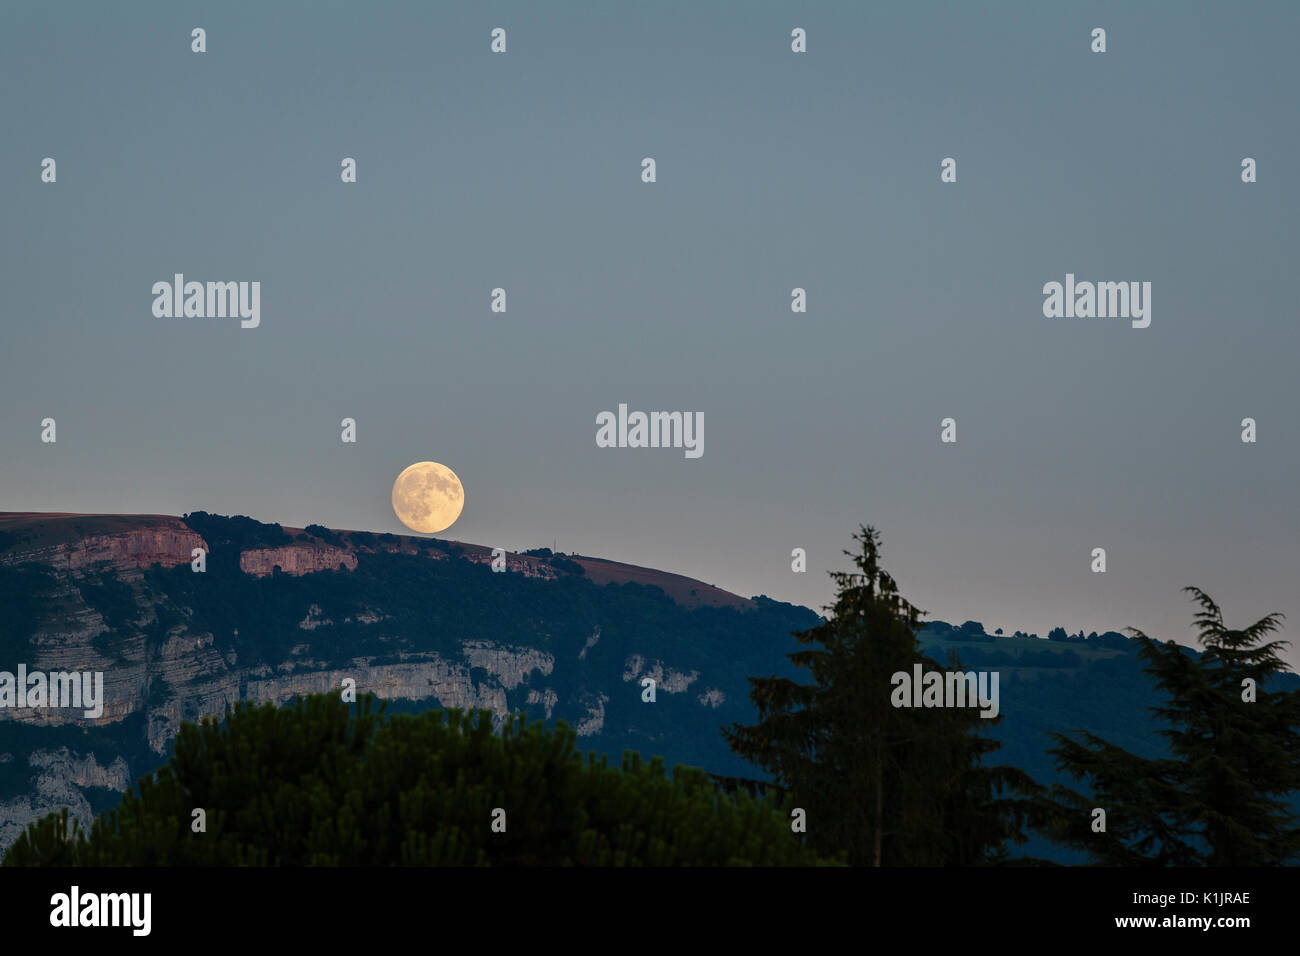 Full moon rising over the french alps. - Stock Image